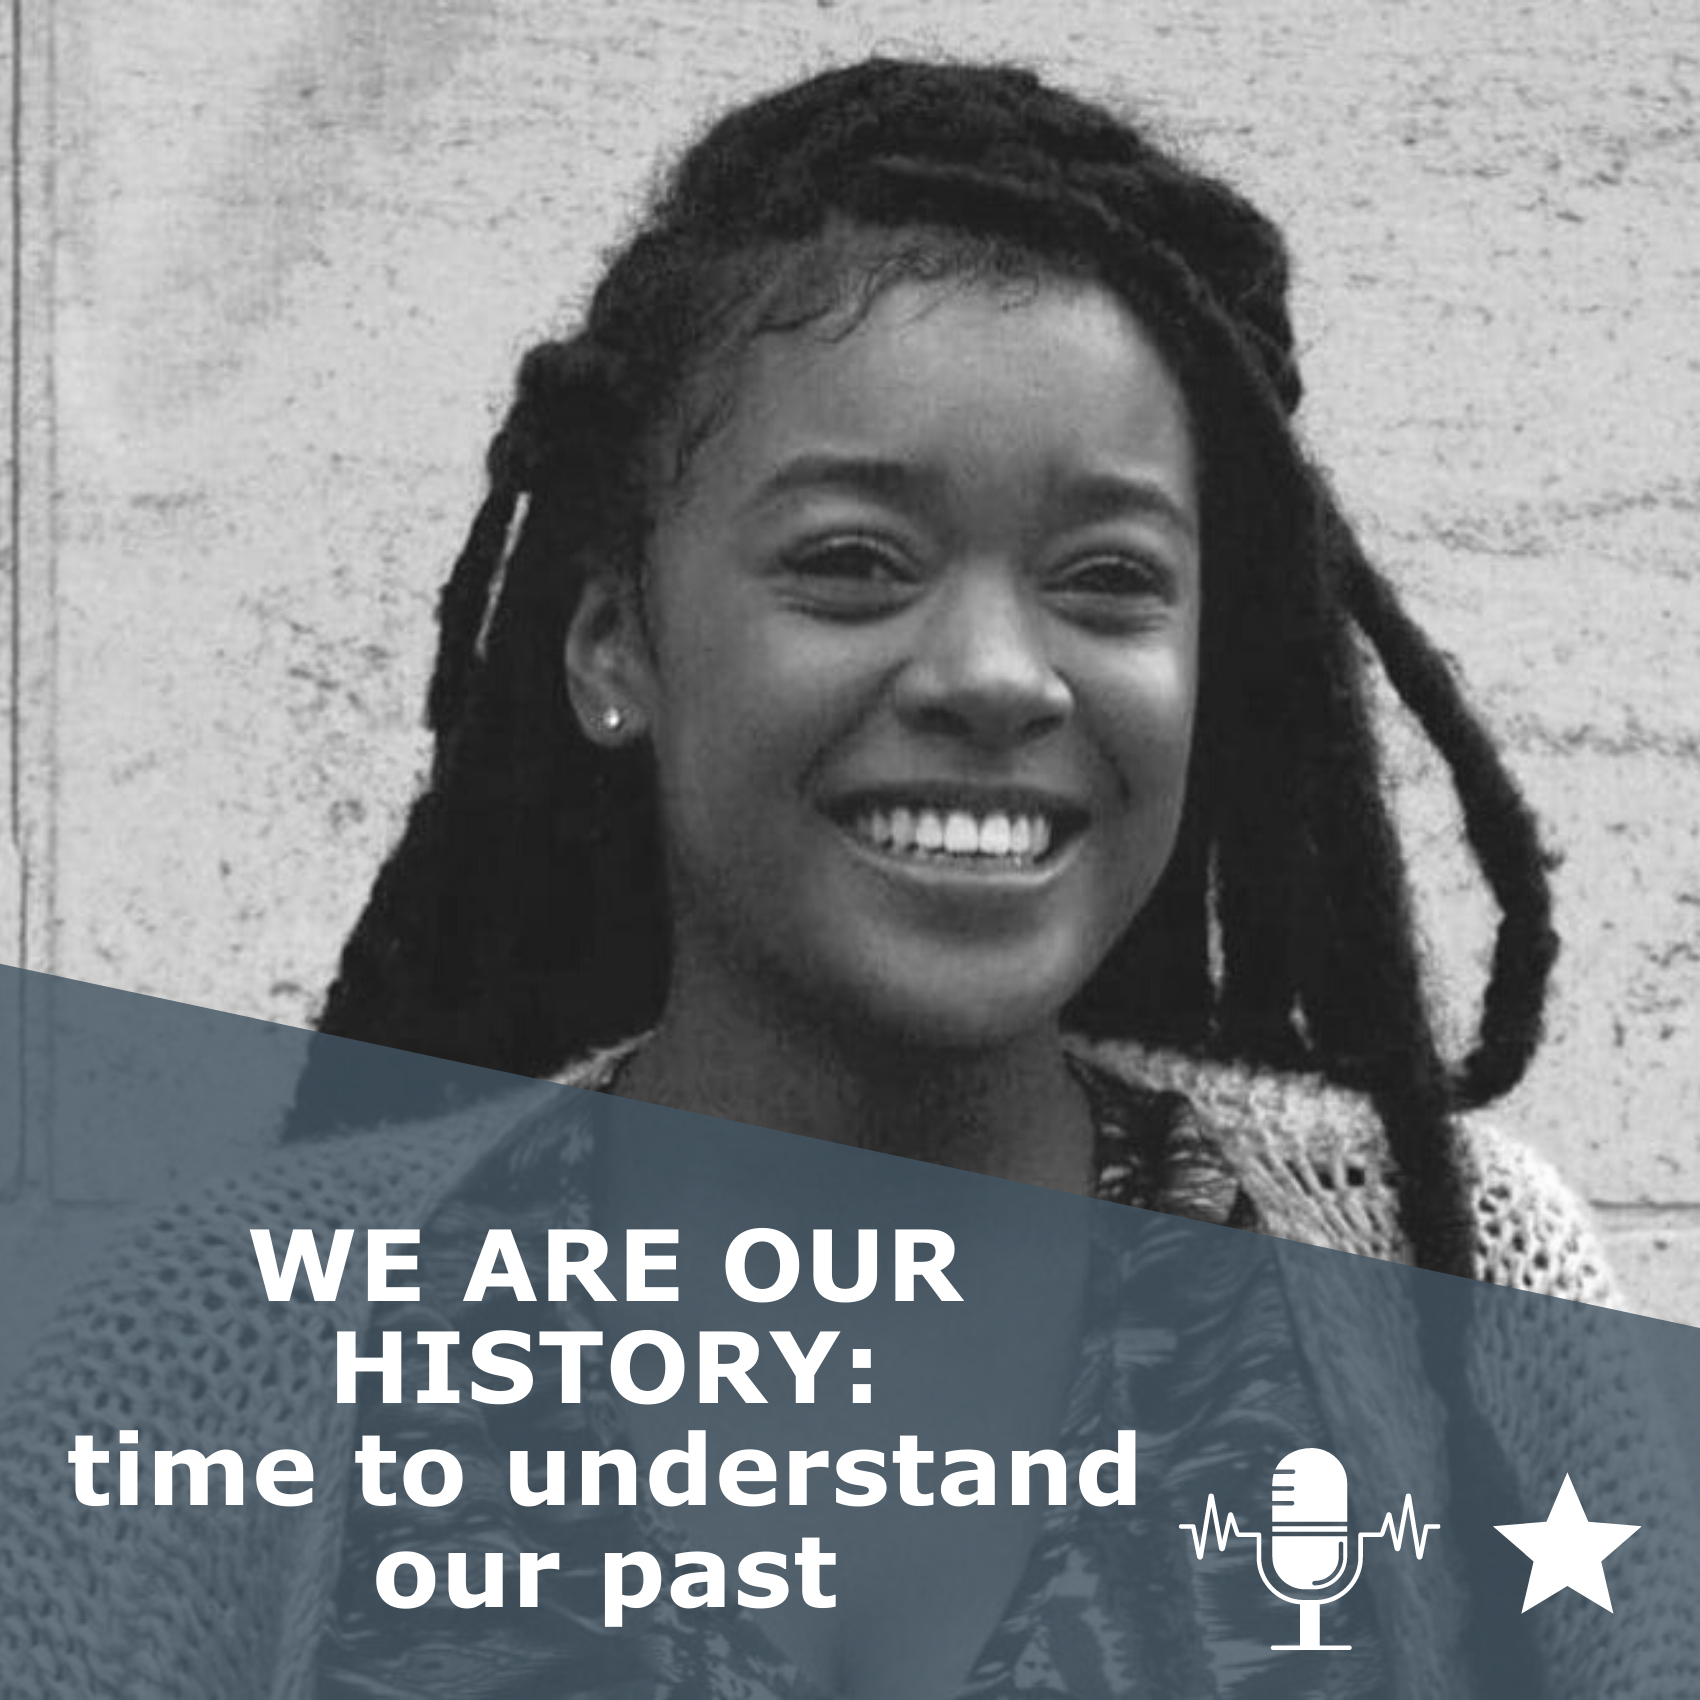 Picture of Lavinya Stennett, founder of the Black Curriculum, in black and white. Title WE ARE OUR HISTORY: time to understand our past. It is a podcast rated 1 star